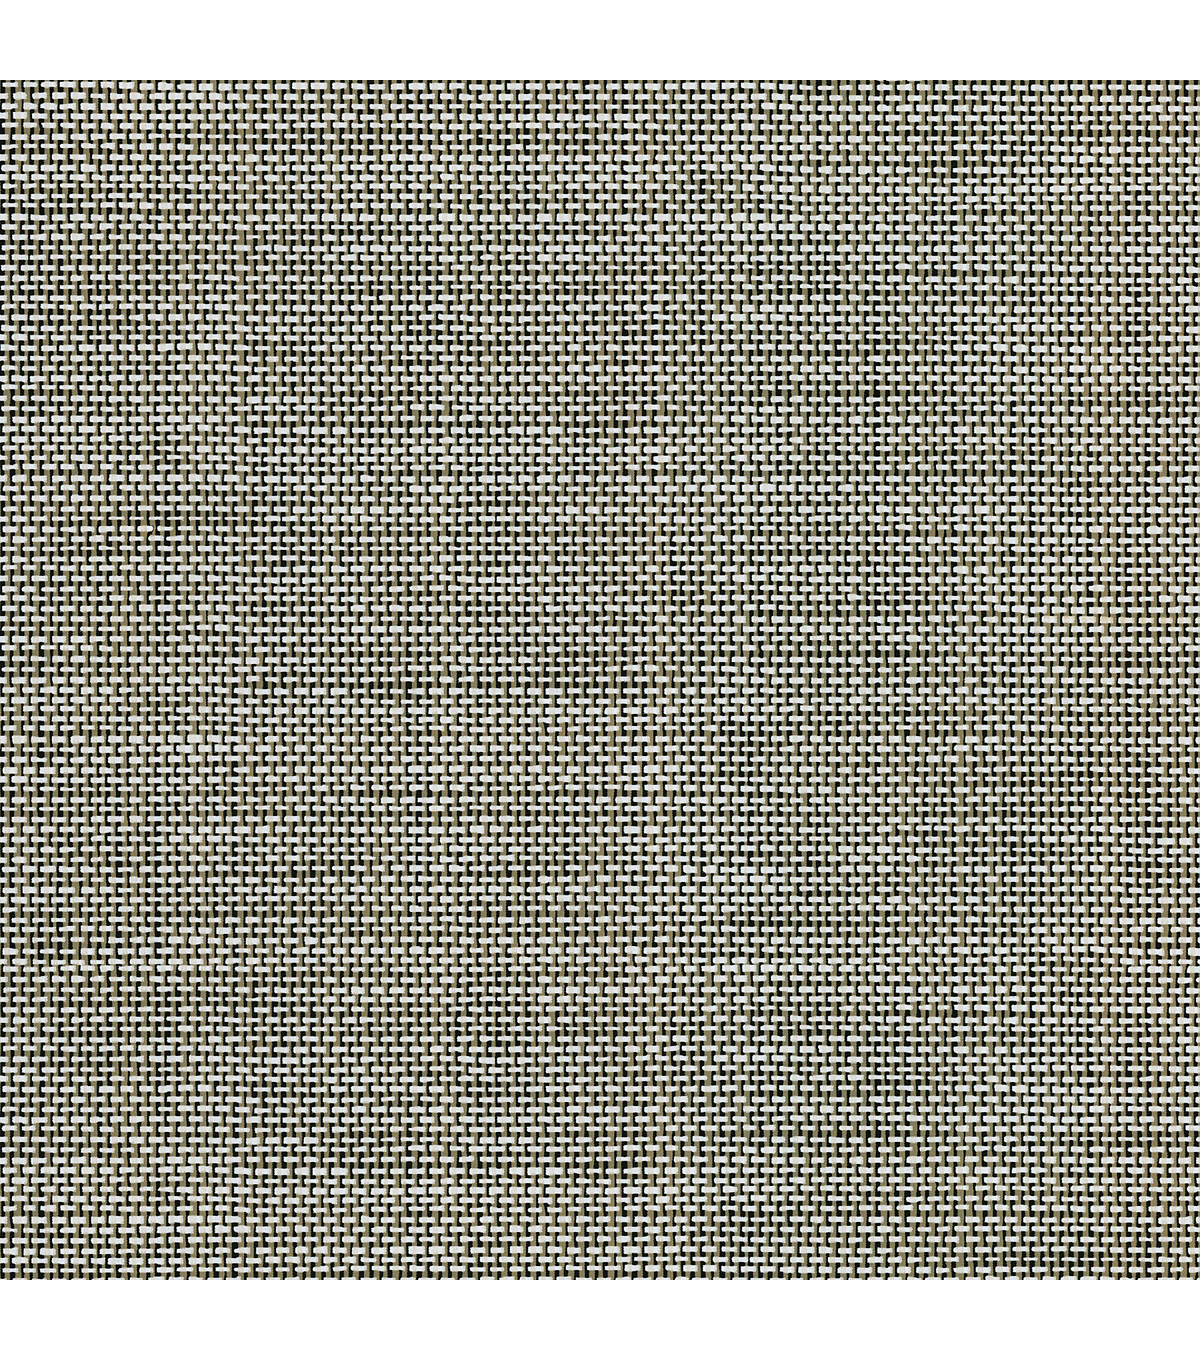 Isaac Black Woven Texture Wallpaper Sample